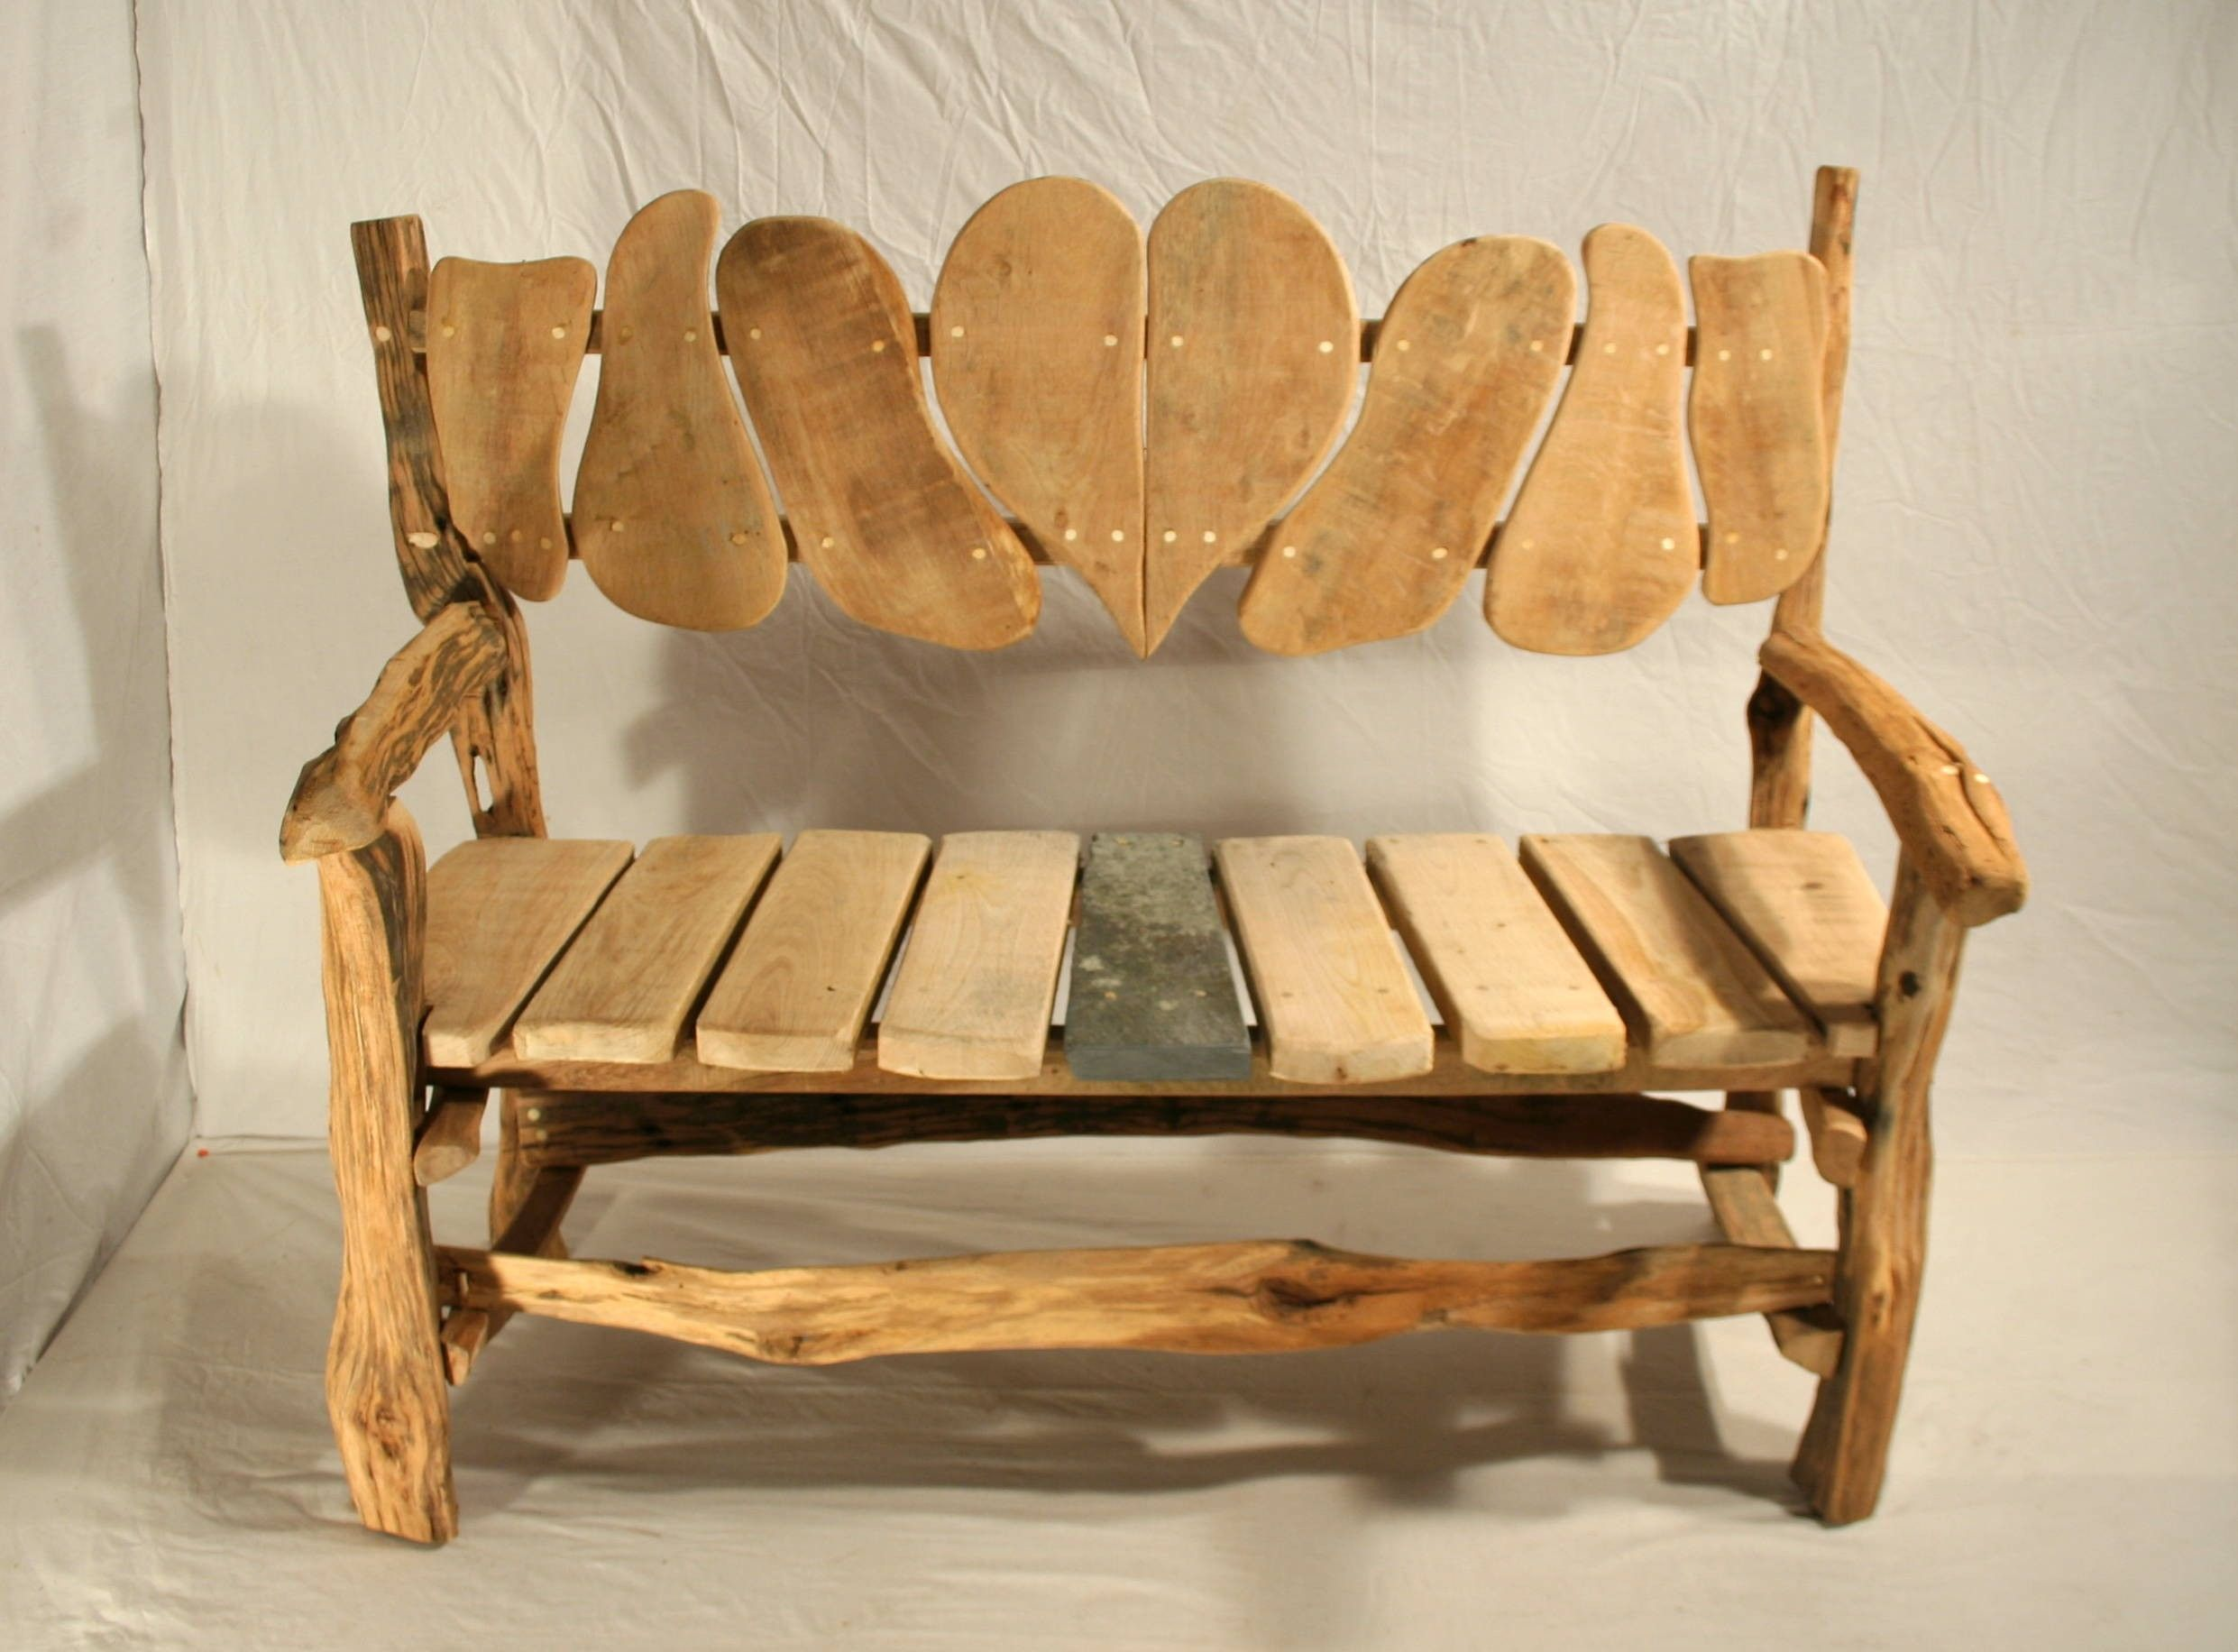 Woodland Love Seat & Garden Bench Adirondack chairs for